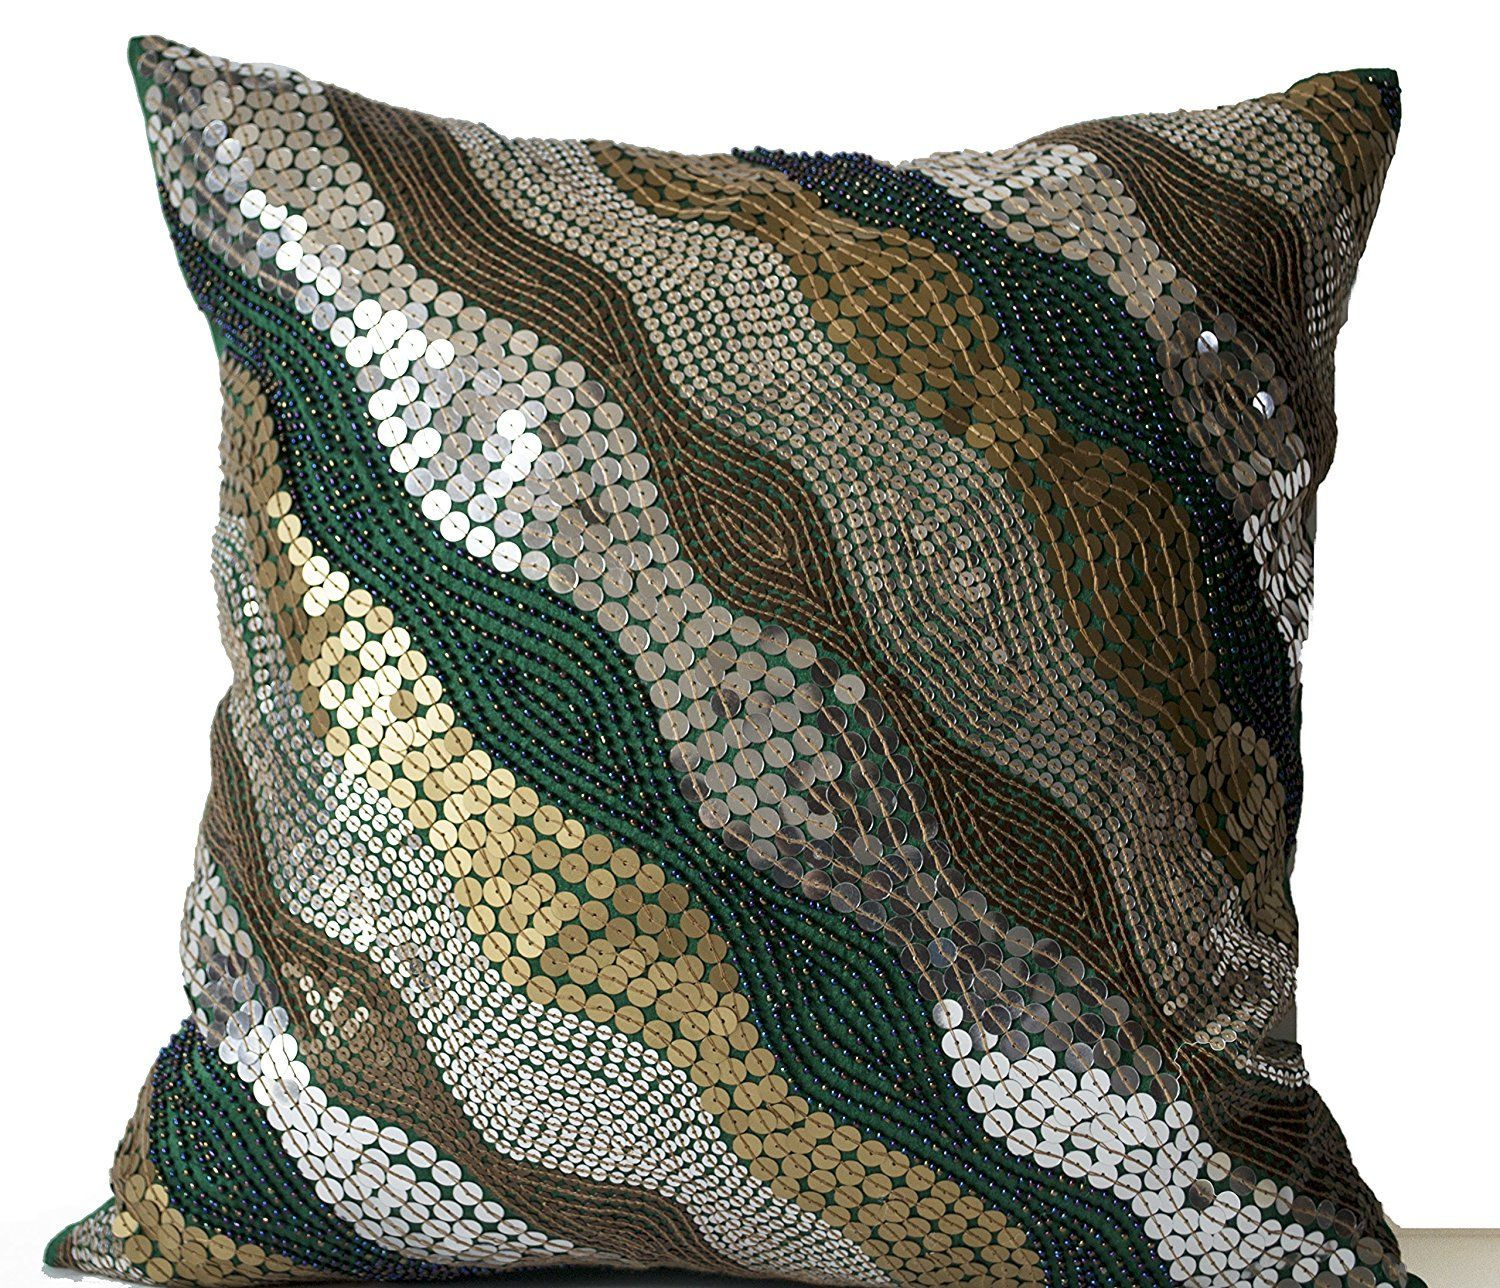 Decorative Pillow Case Emerald Green Throw Pillow Covers with